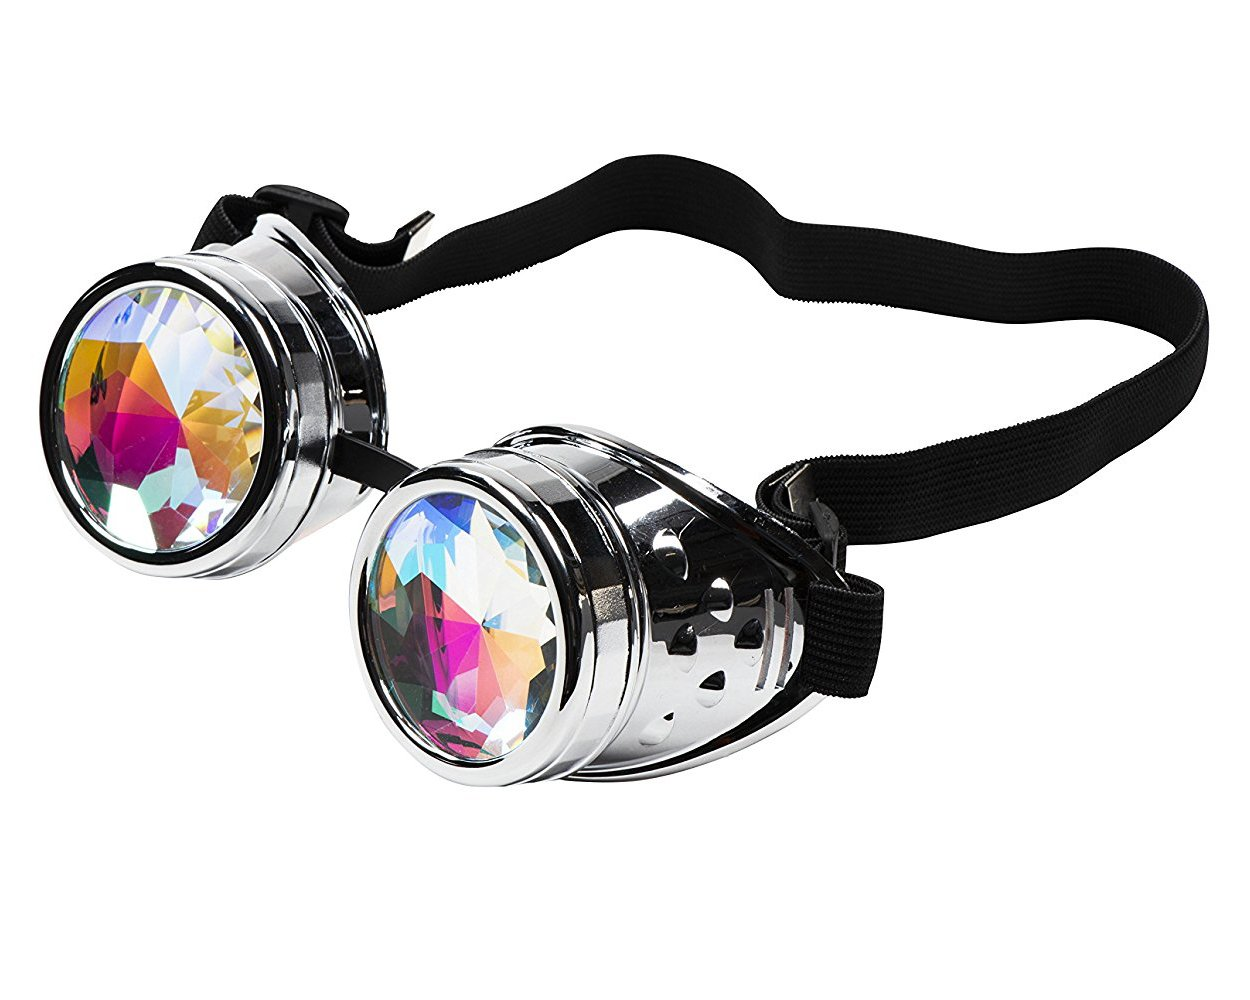 Kaleidoscope Crystal Lenses Steampunk Goggle – Vintage Retro Style Glasses for Halloween Costume Accessories